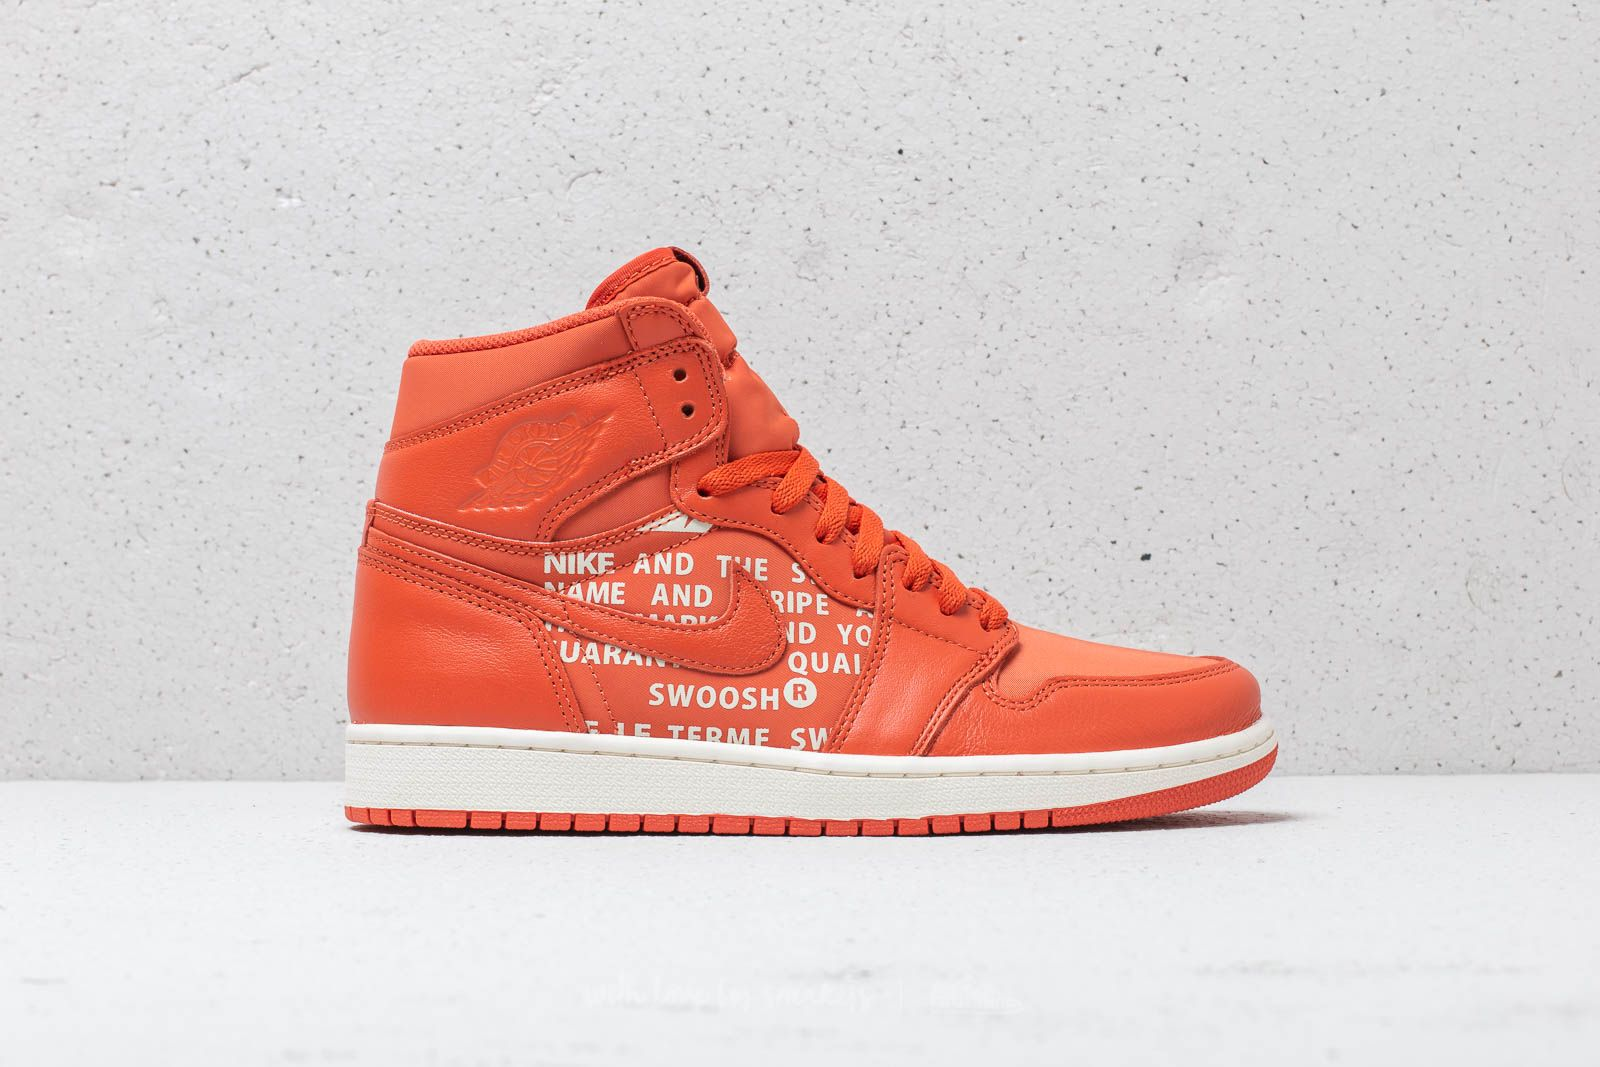 half off 66545 9823c Air Jordan 1 Retro High OG Vintage Coral  Sail at a great price  172 buy